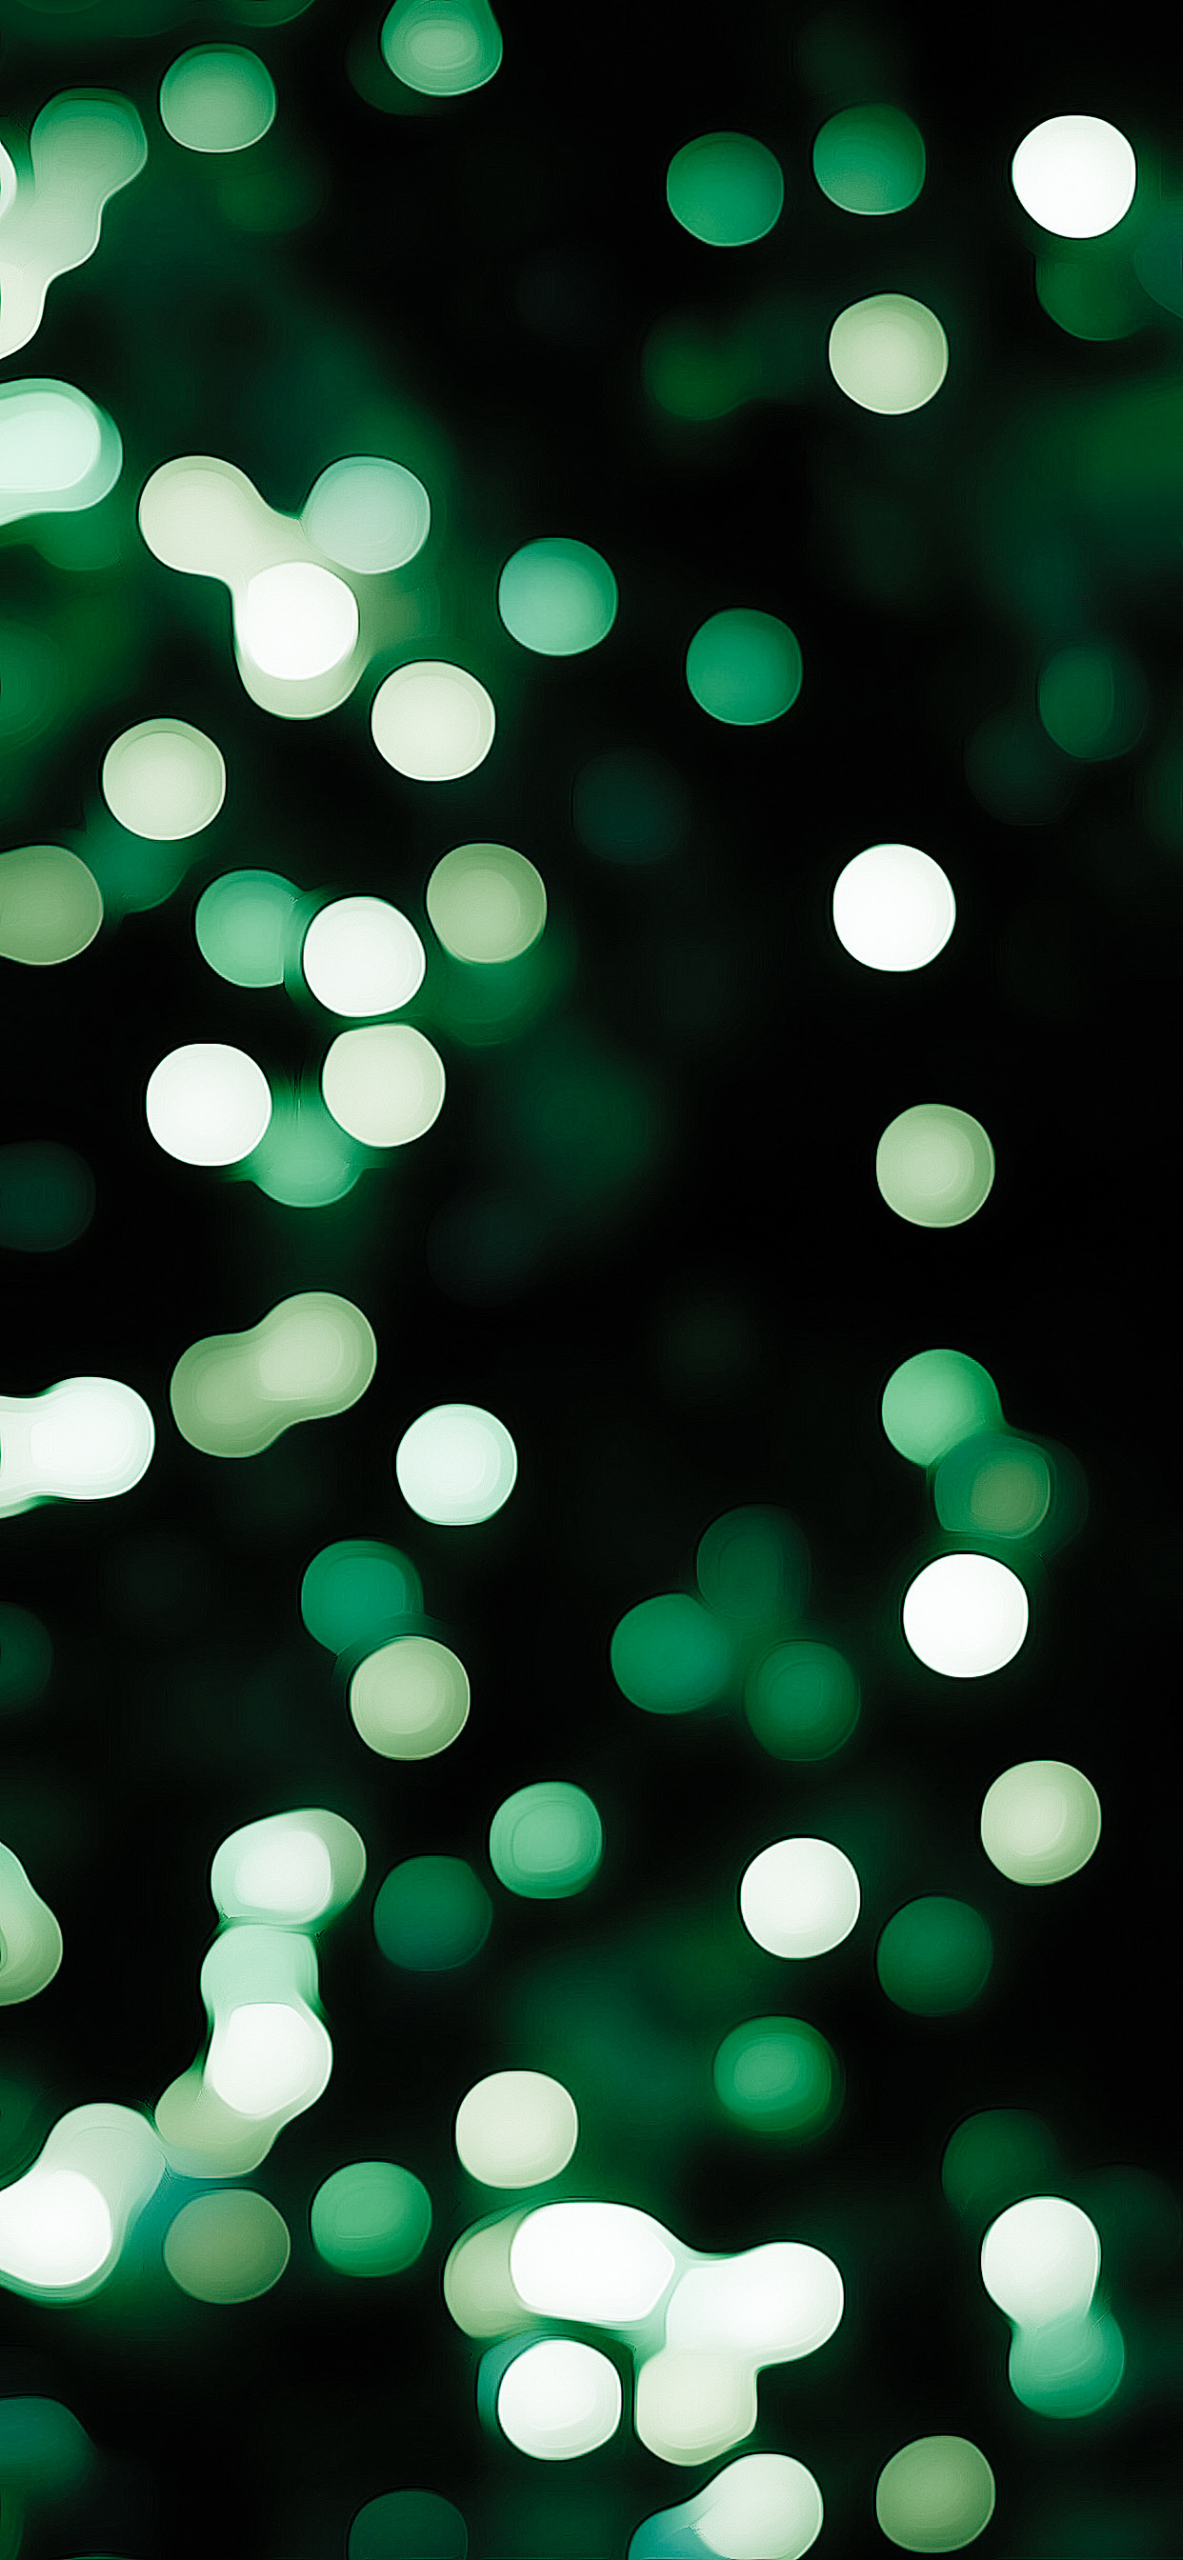 Christmas wallpaper iPhone AR72014 bokeh midnight green lights